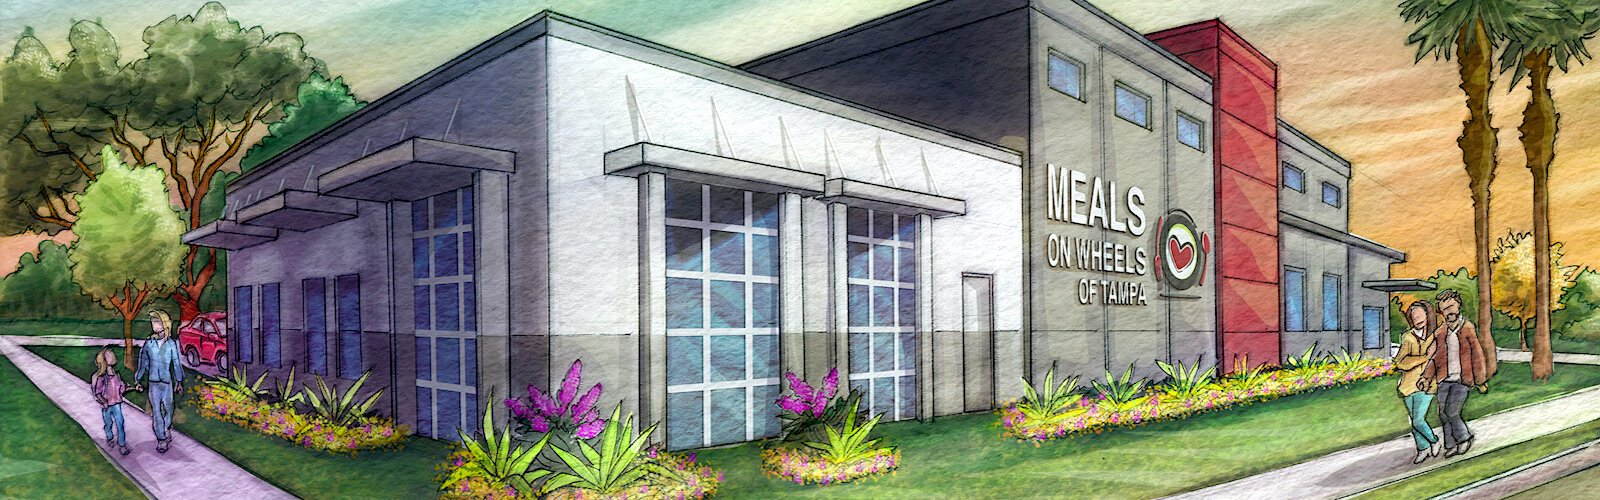 JVB Architect, LLC and Azzarelli Builders are partnering with Meals on Wheels Tampa for a major expansion project.